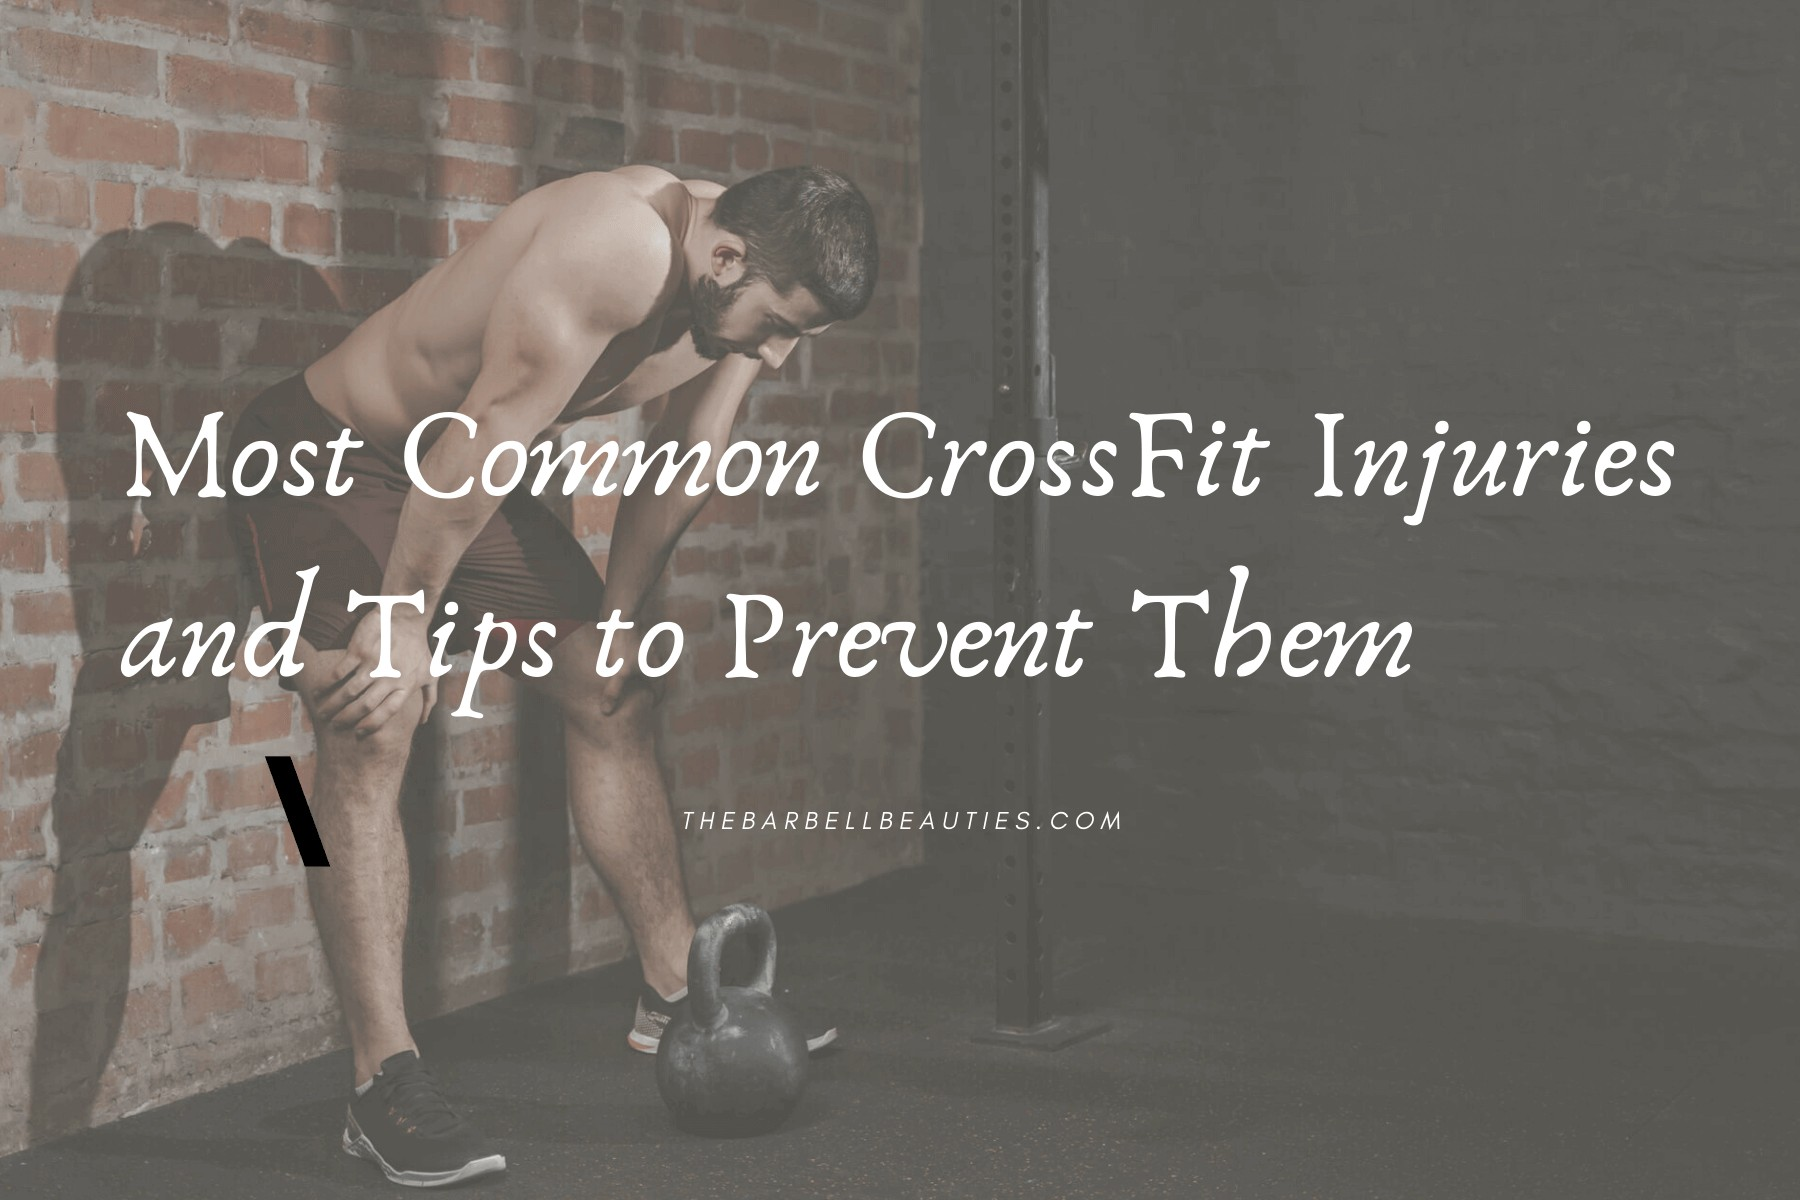 Most Common Fitness Injuries and Tips to Prevent Them